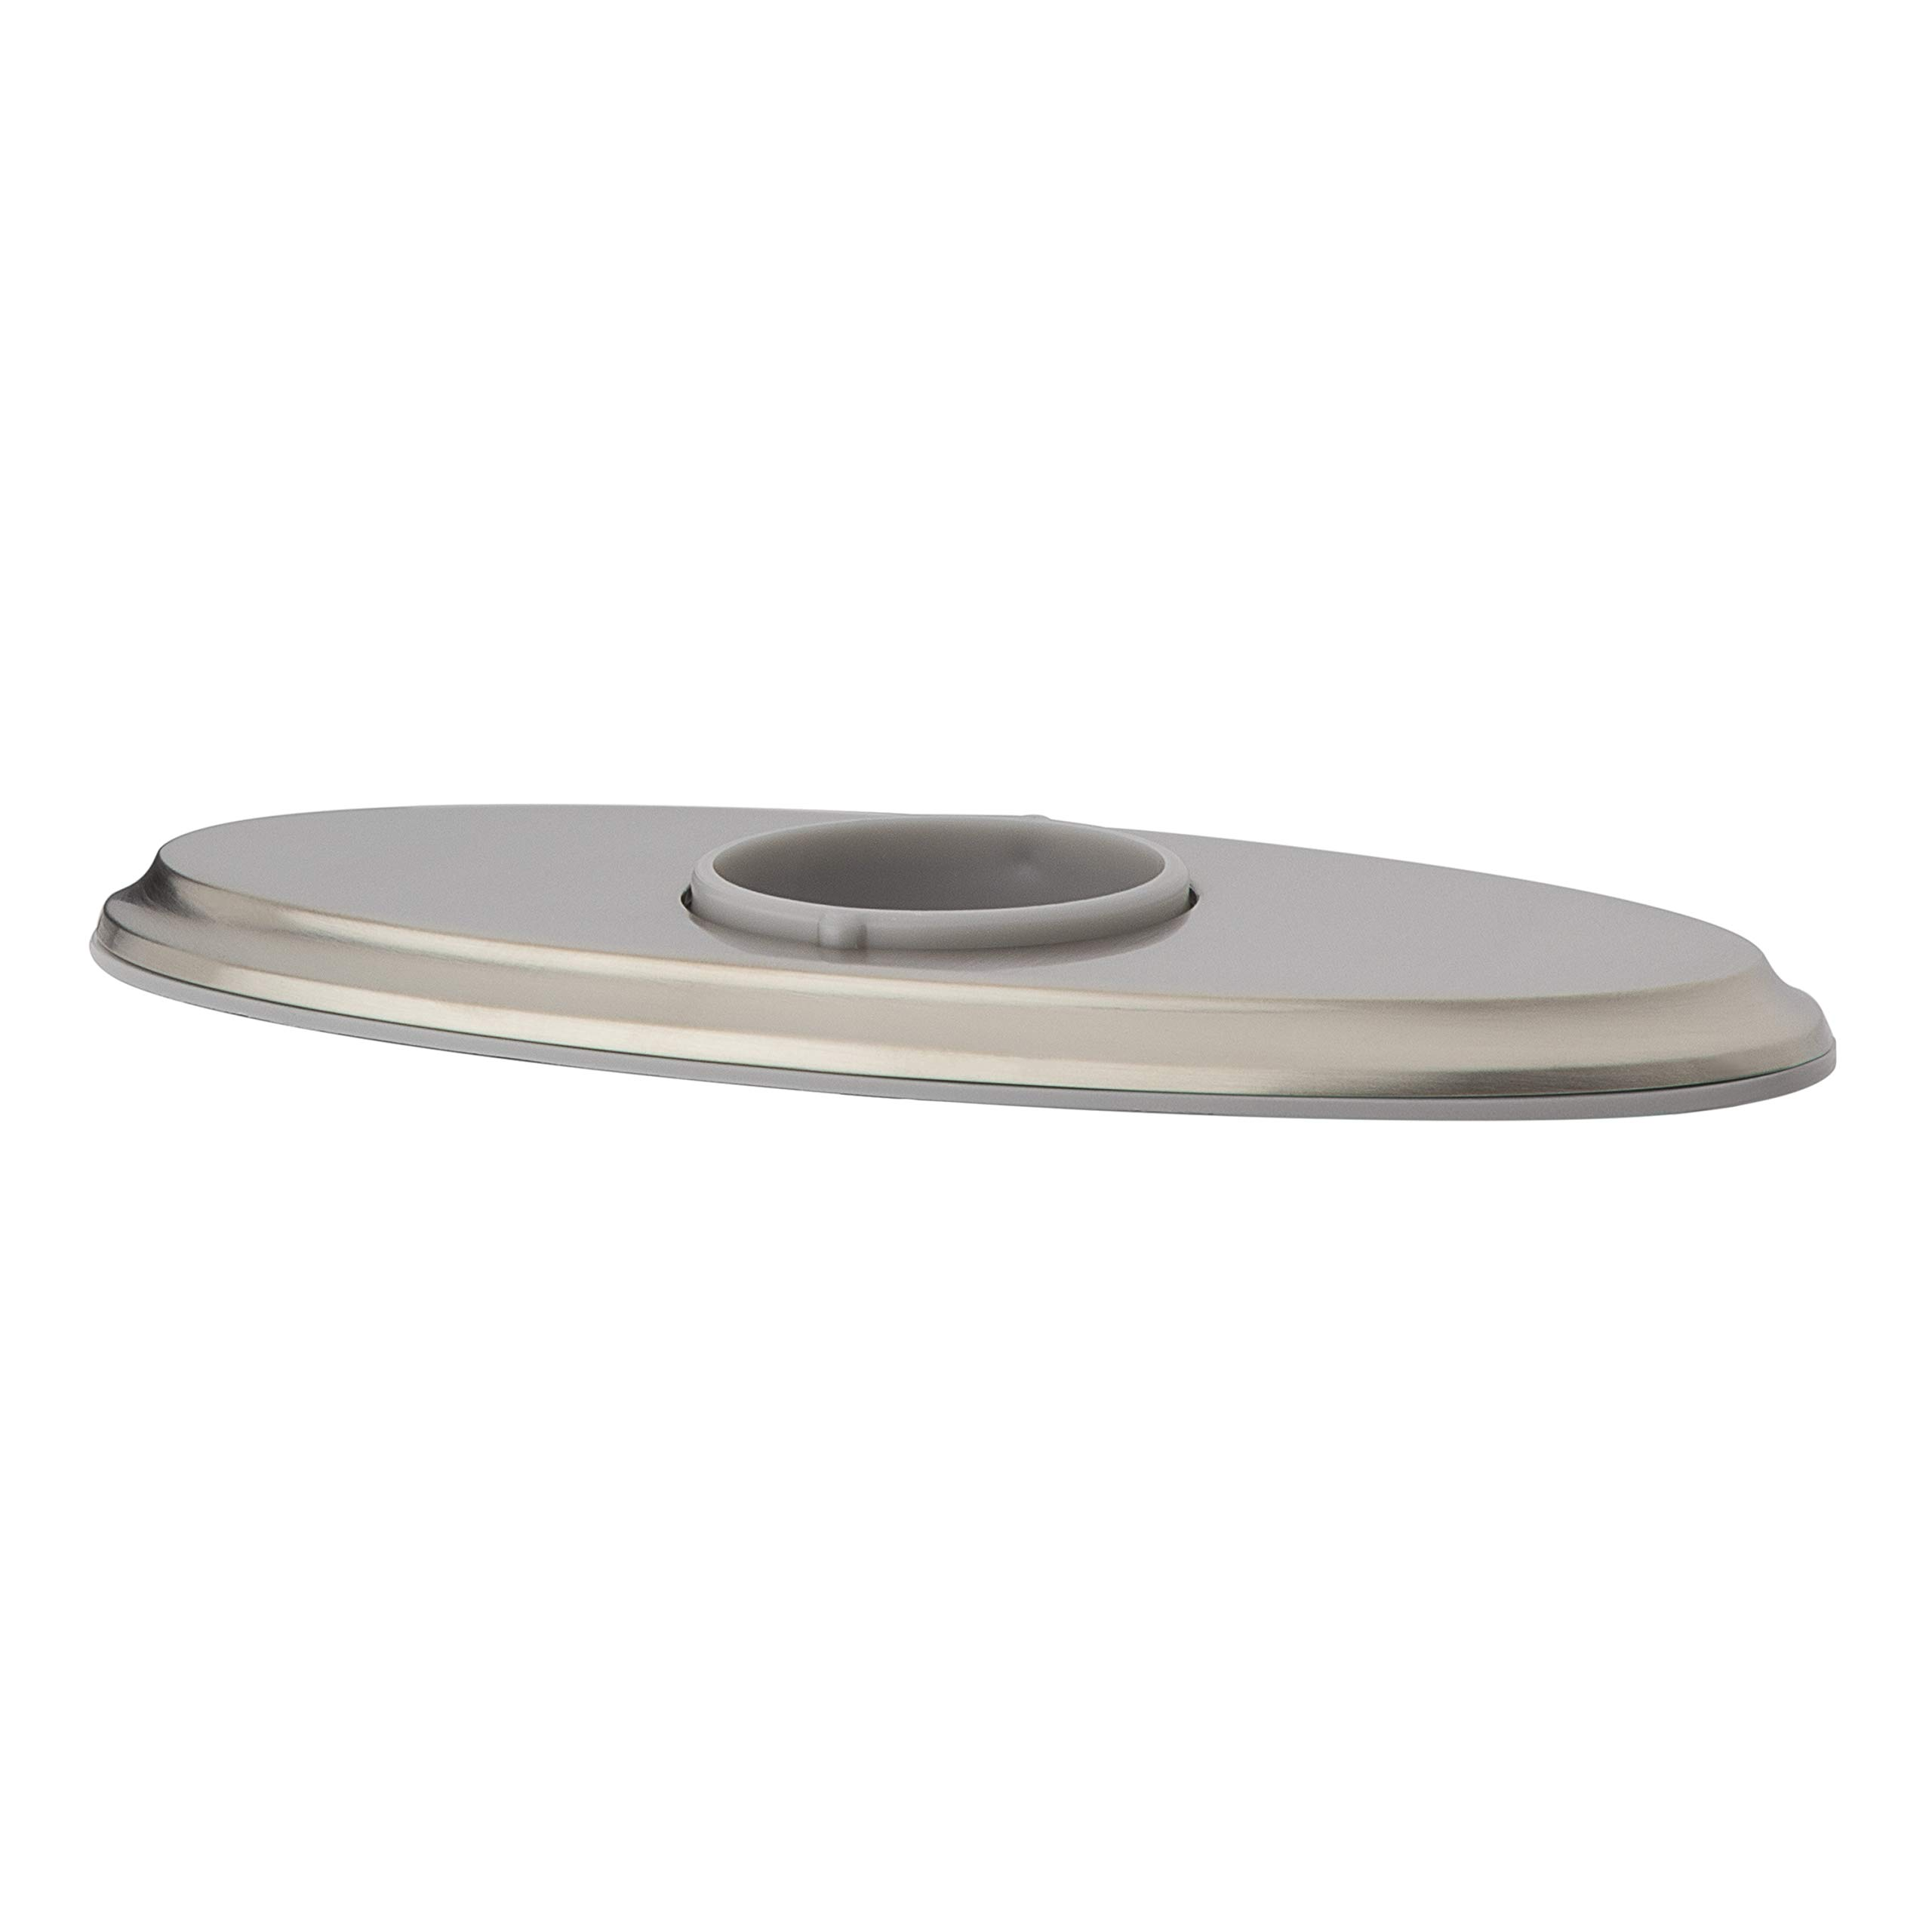 Pfister 961232J Deckplate for Rhen Single Control Faucet, Brushed Nickel by Pfister